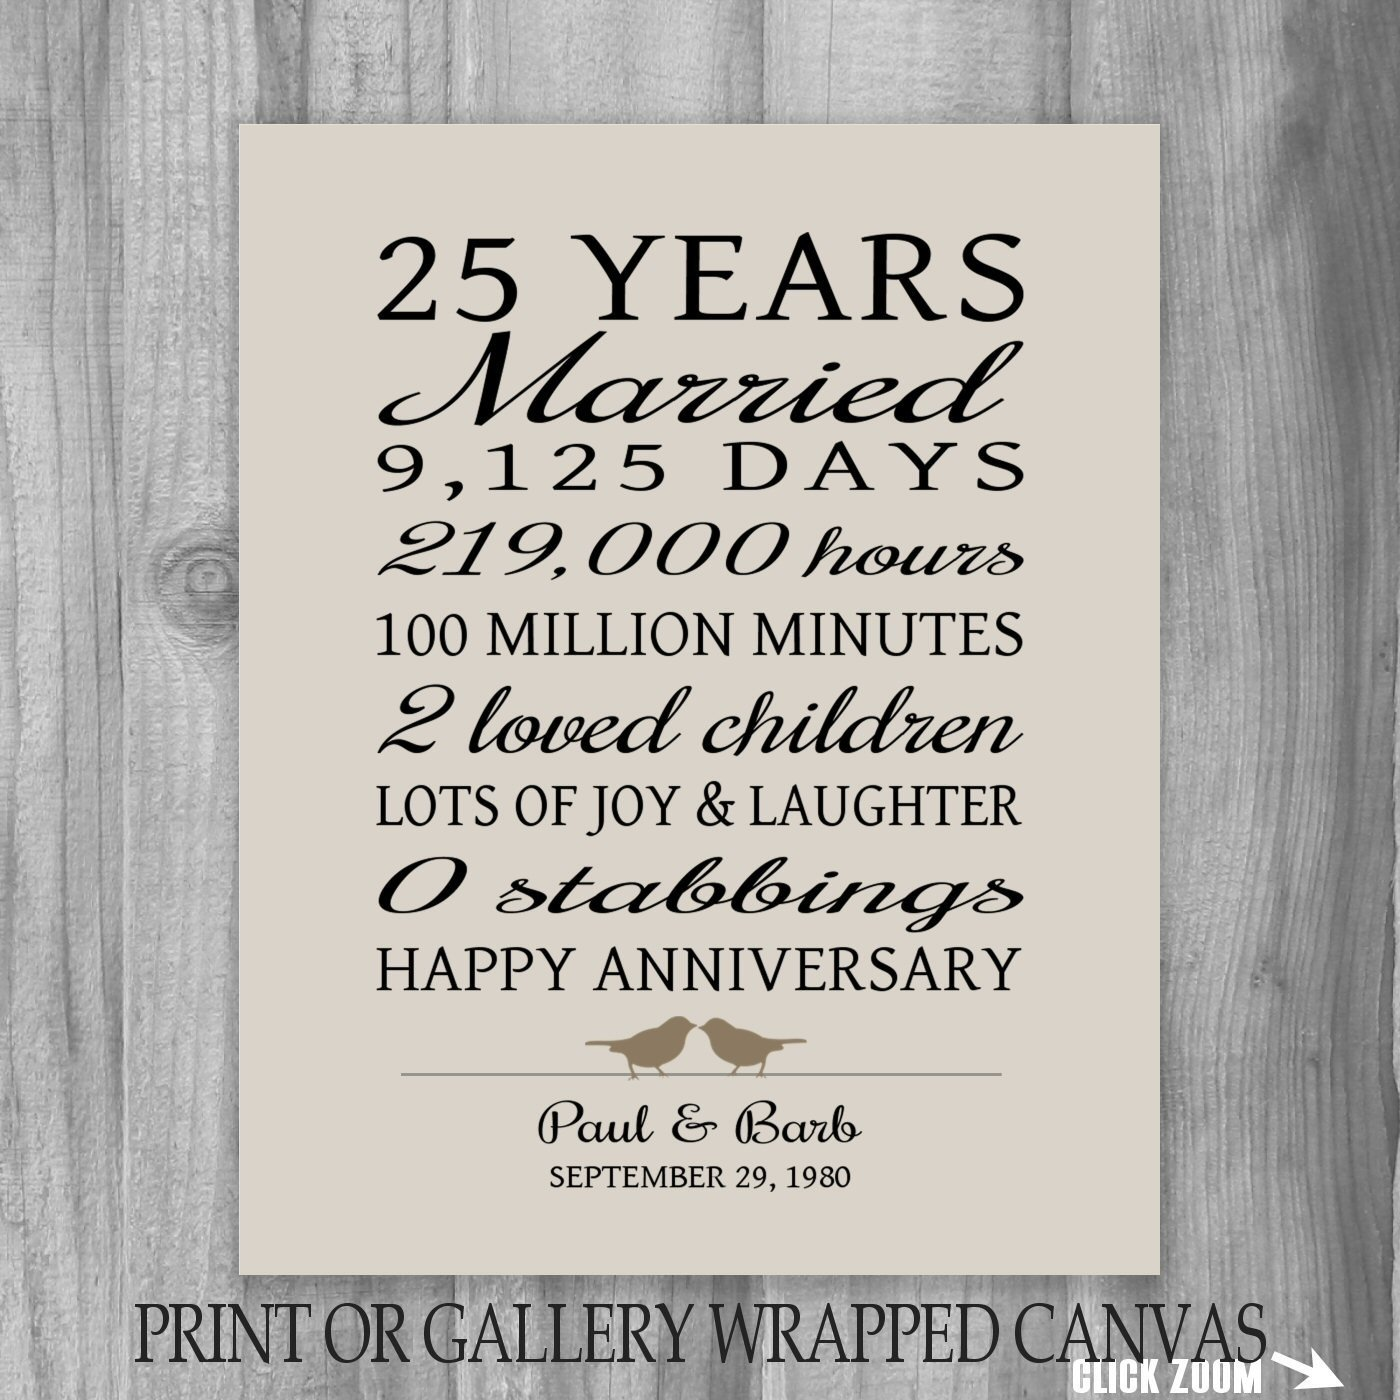 10 Best 9 Year Anniversary Gift Ideas awesome 5 yr wedding anniversary gift ideas photos styles ideas 2020